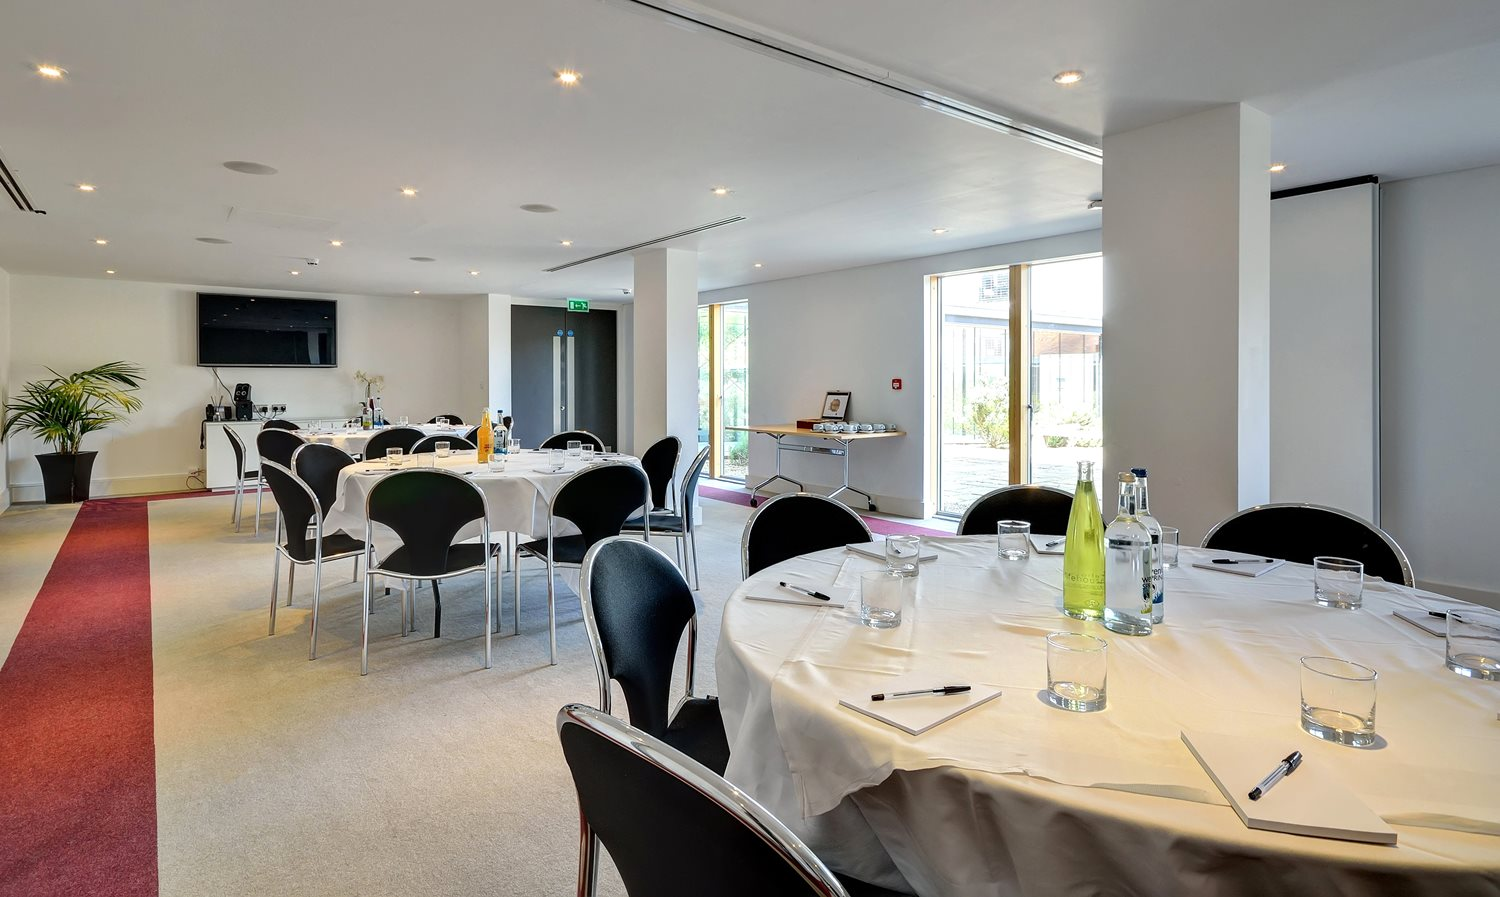 The Thorpe Suite can accommodate up to 60 delegates (theatre style) and can be set up in many different seating styles.